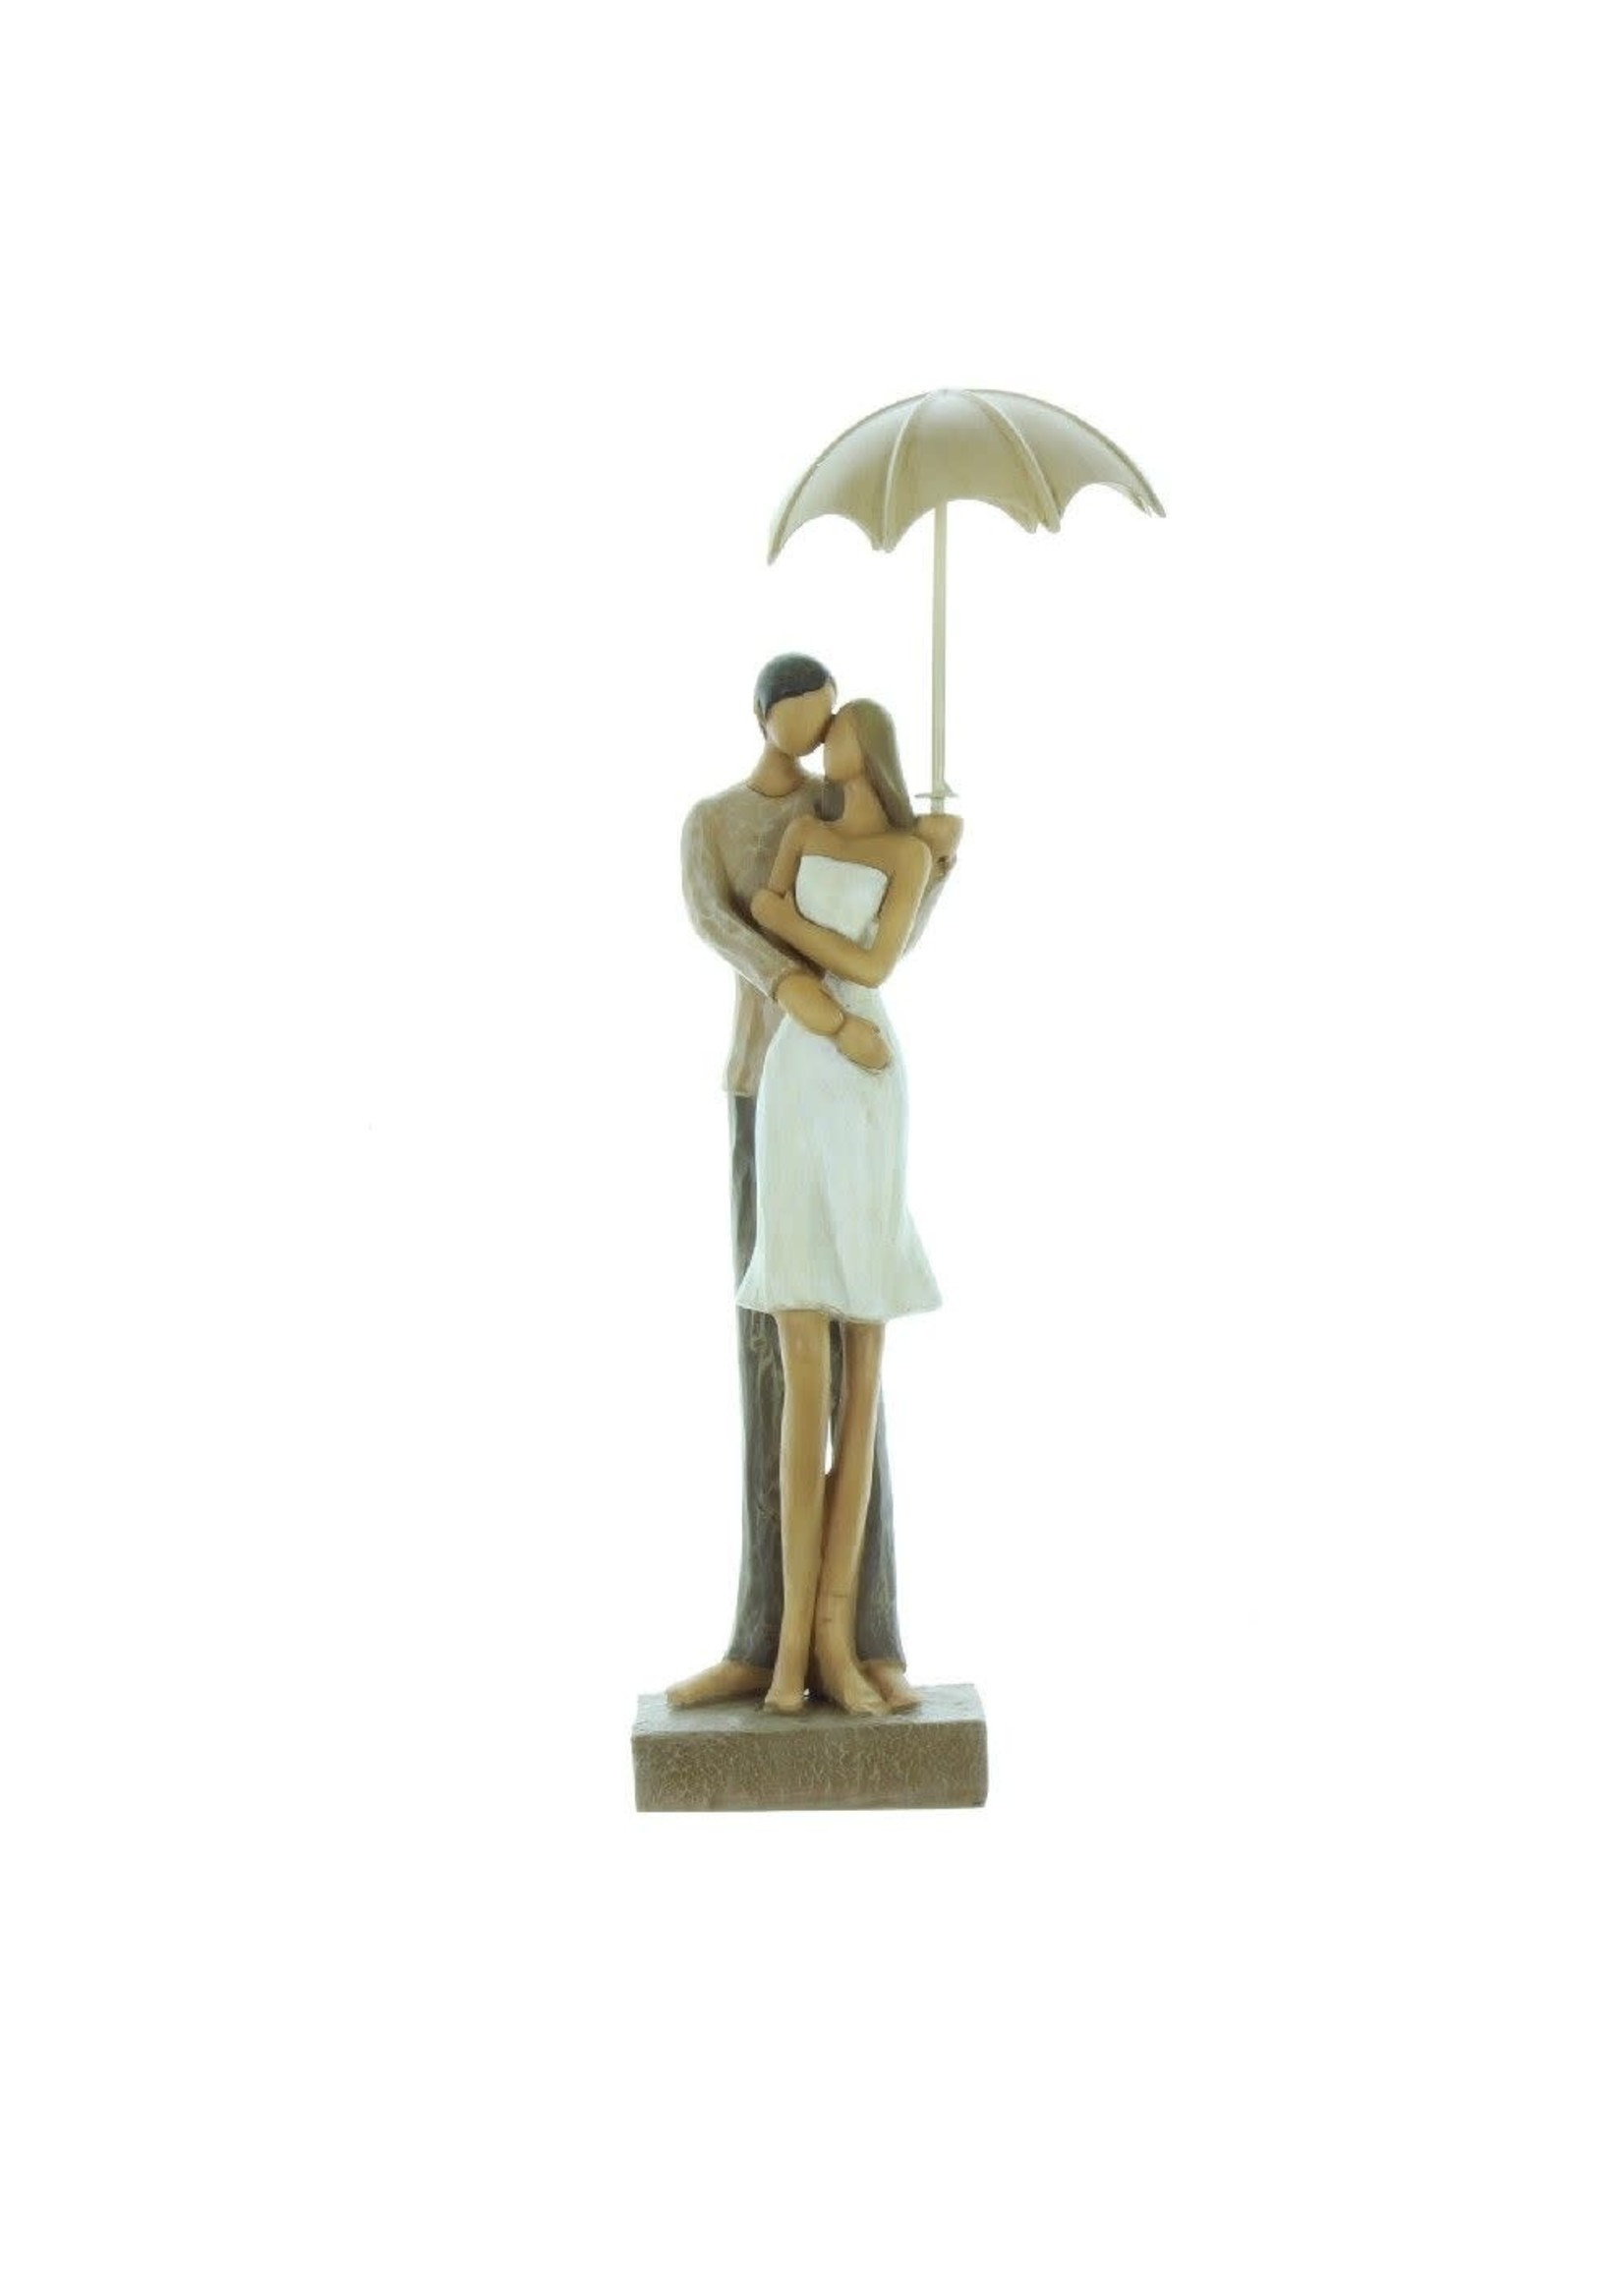 RAINY DAY COLLECTION RESIN FIGURINE - COUPLE EMBRACING